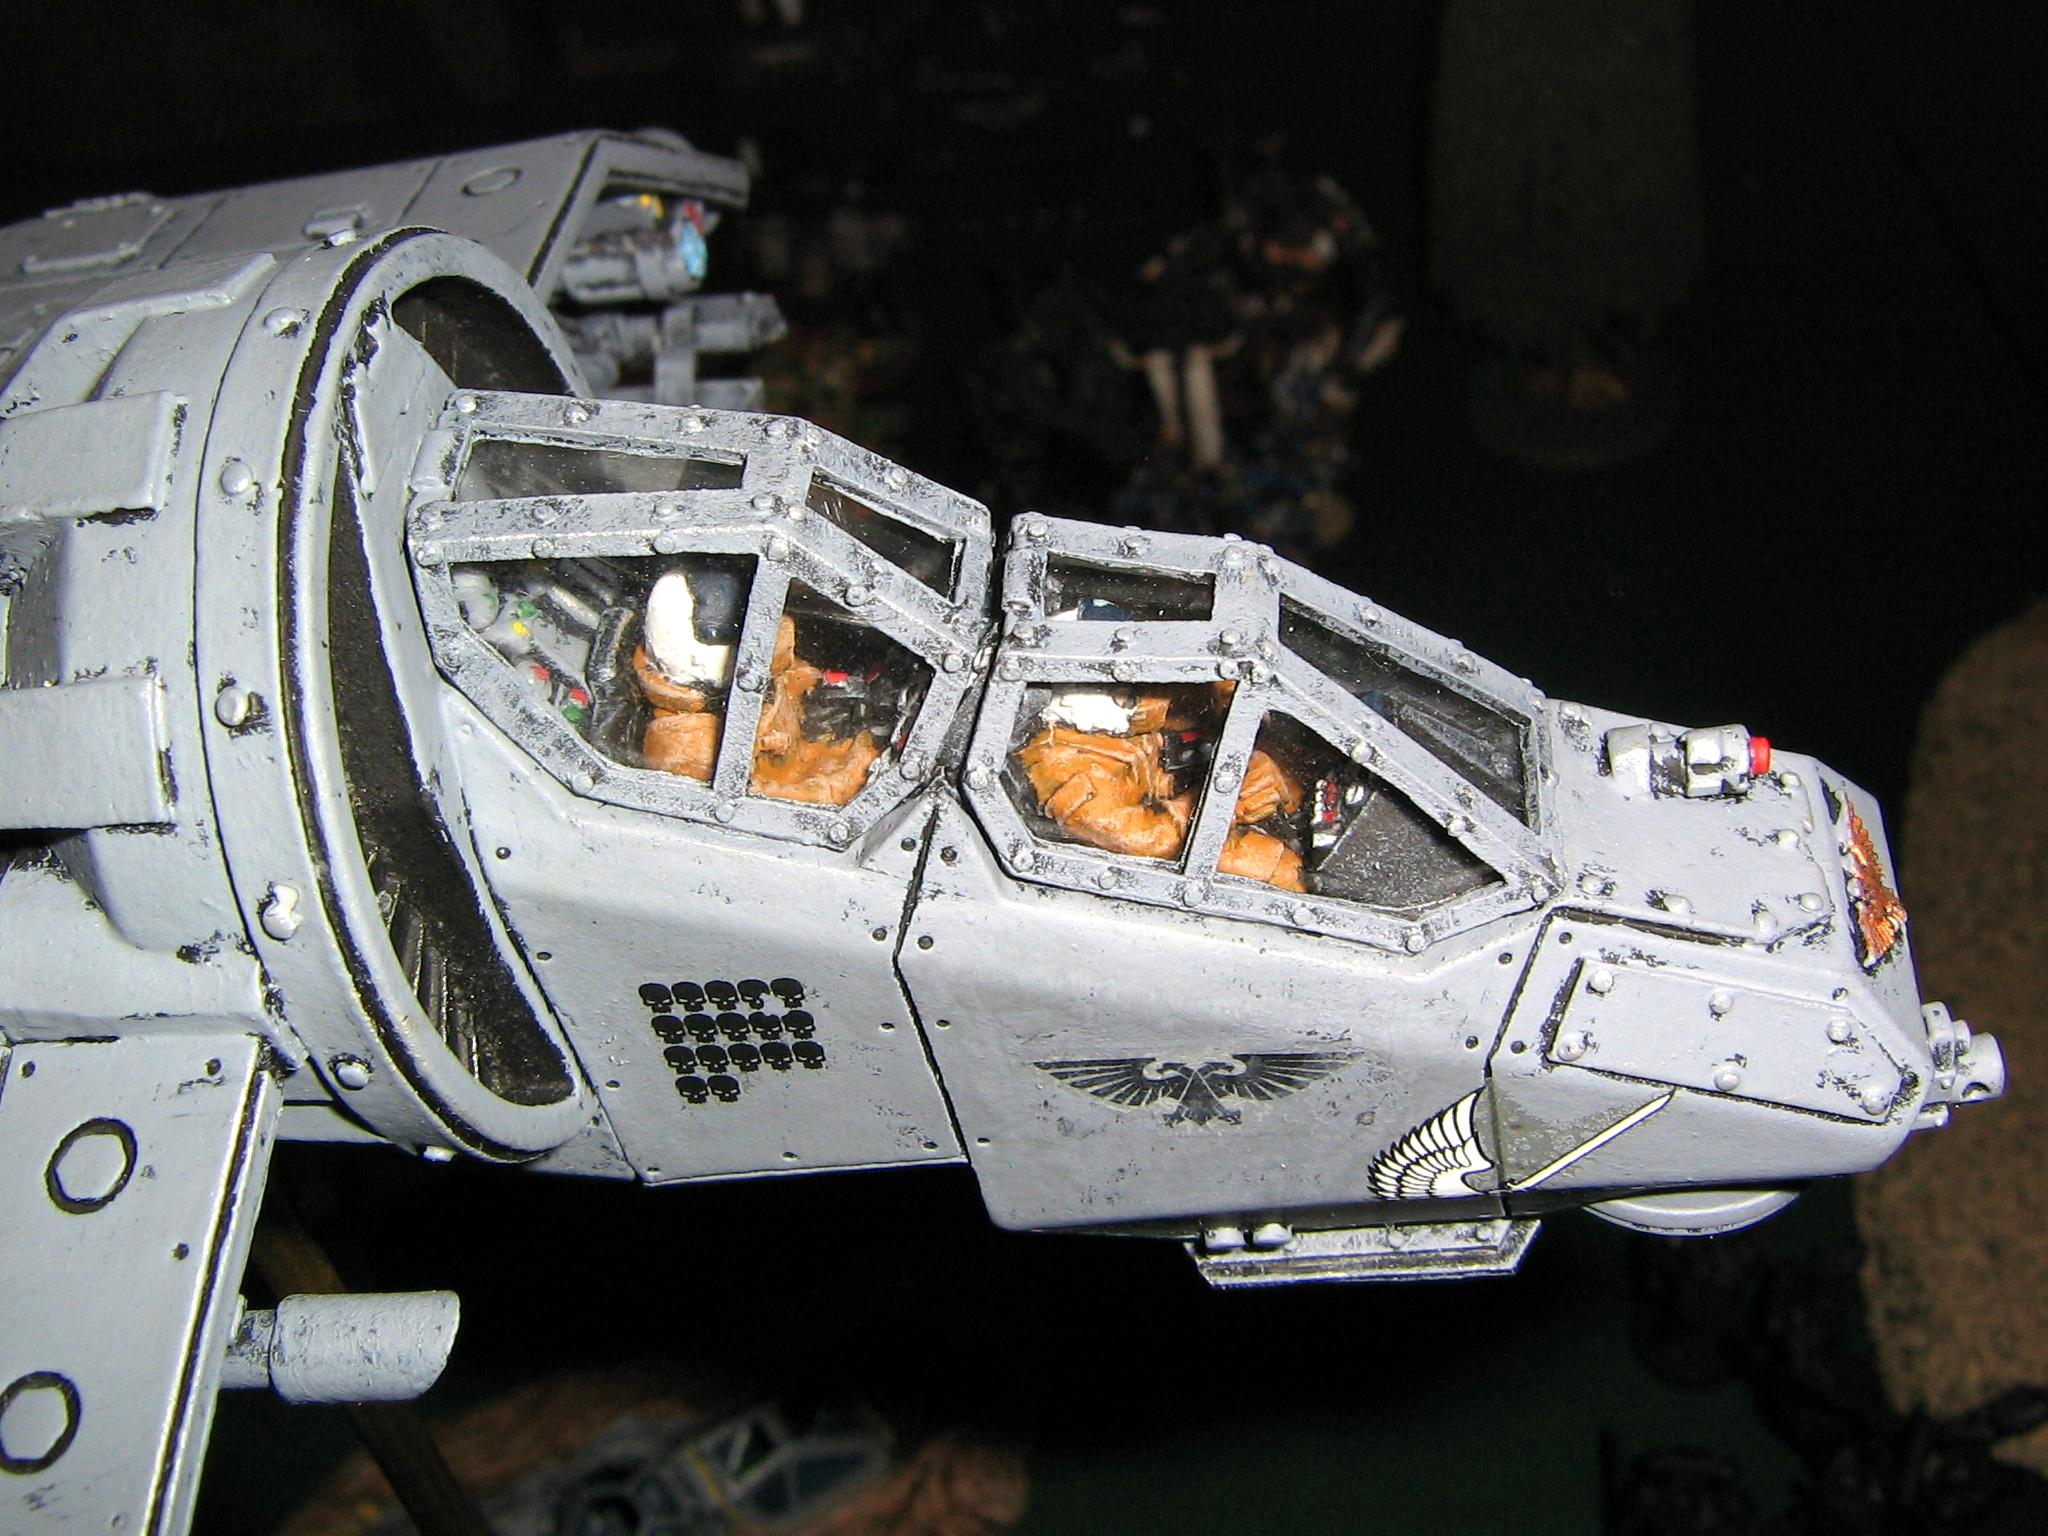 Vulture Gunship Cockpit Detail